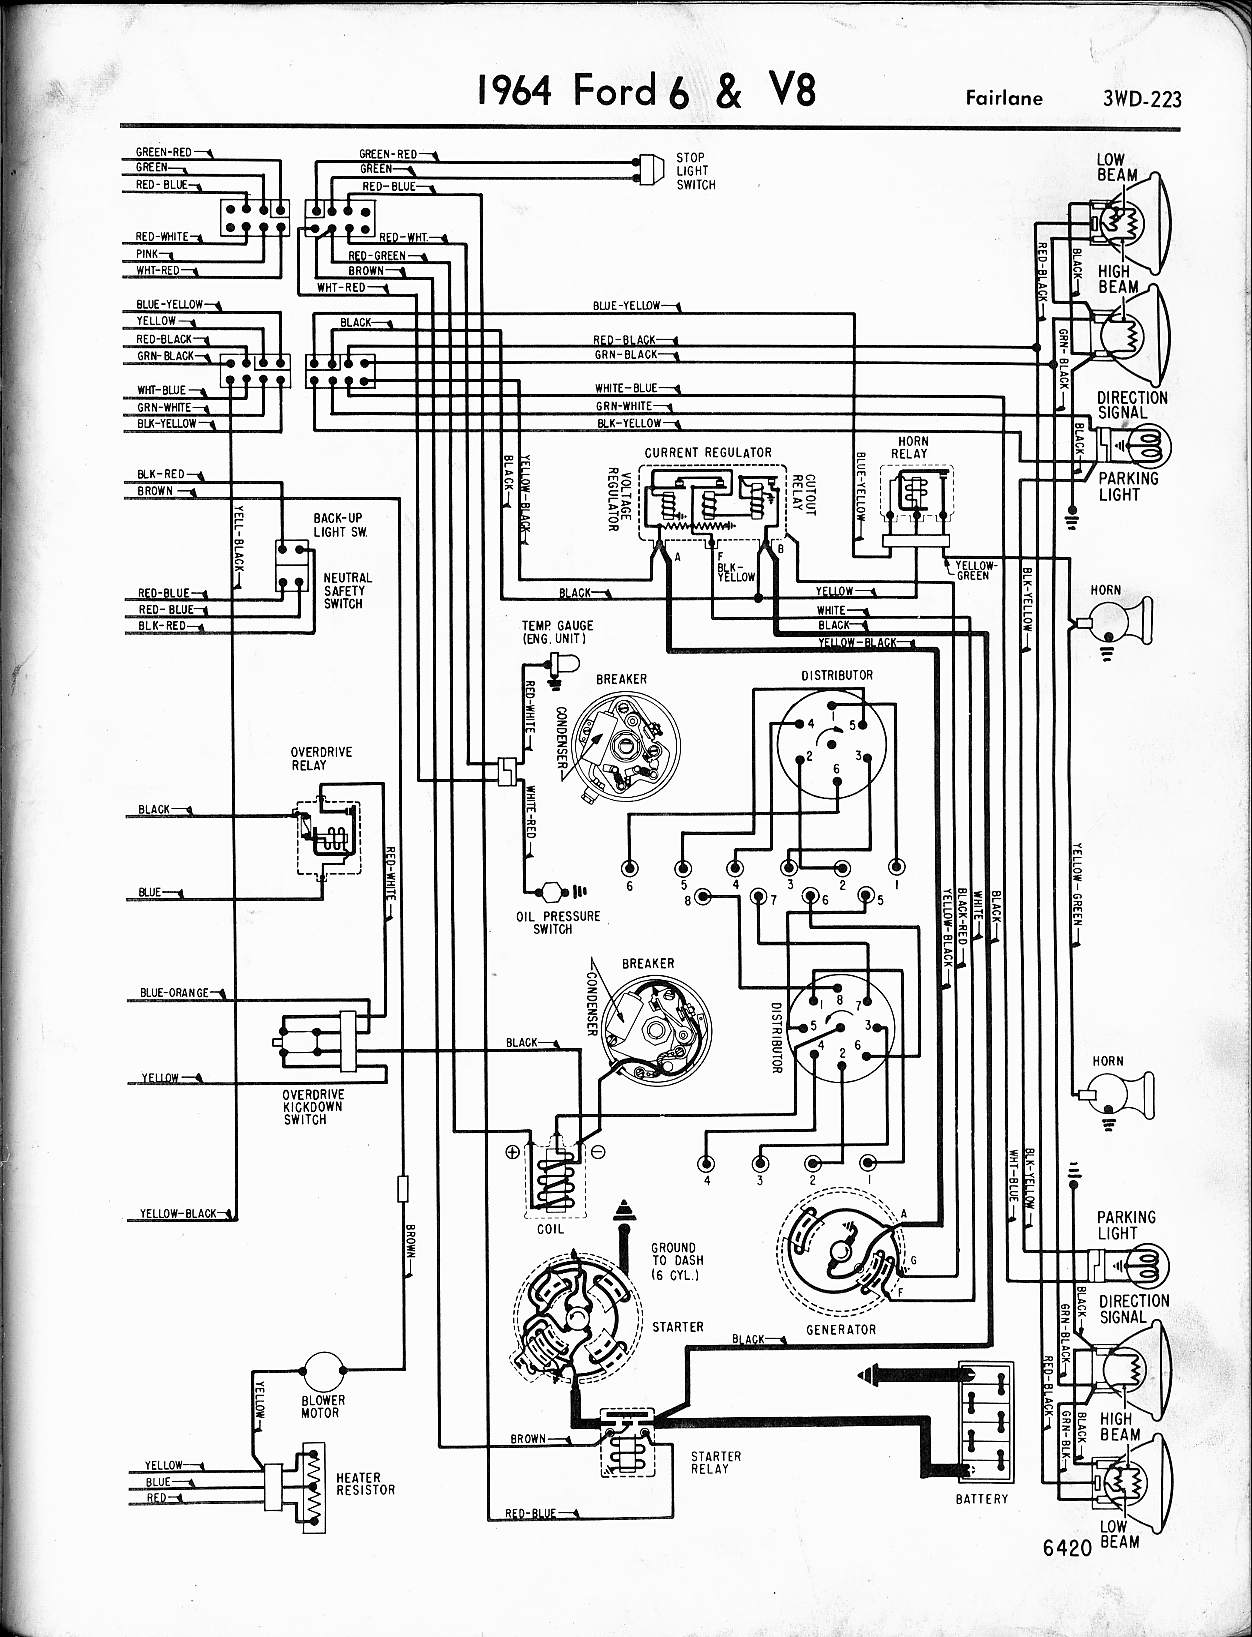 1964 Ford Ranchero Ignition Wiring Diagram Great Installation Of 1973 F100 Dash Illumination Fairlane Diagrams Schema Rh 37 Verena Hoegerl De Mercury Comet 1963